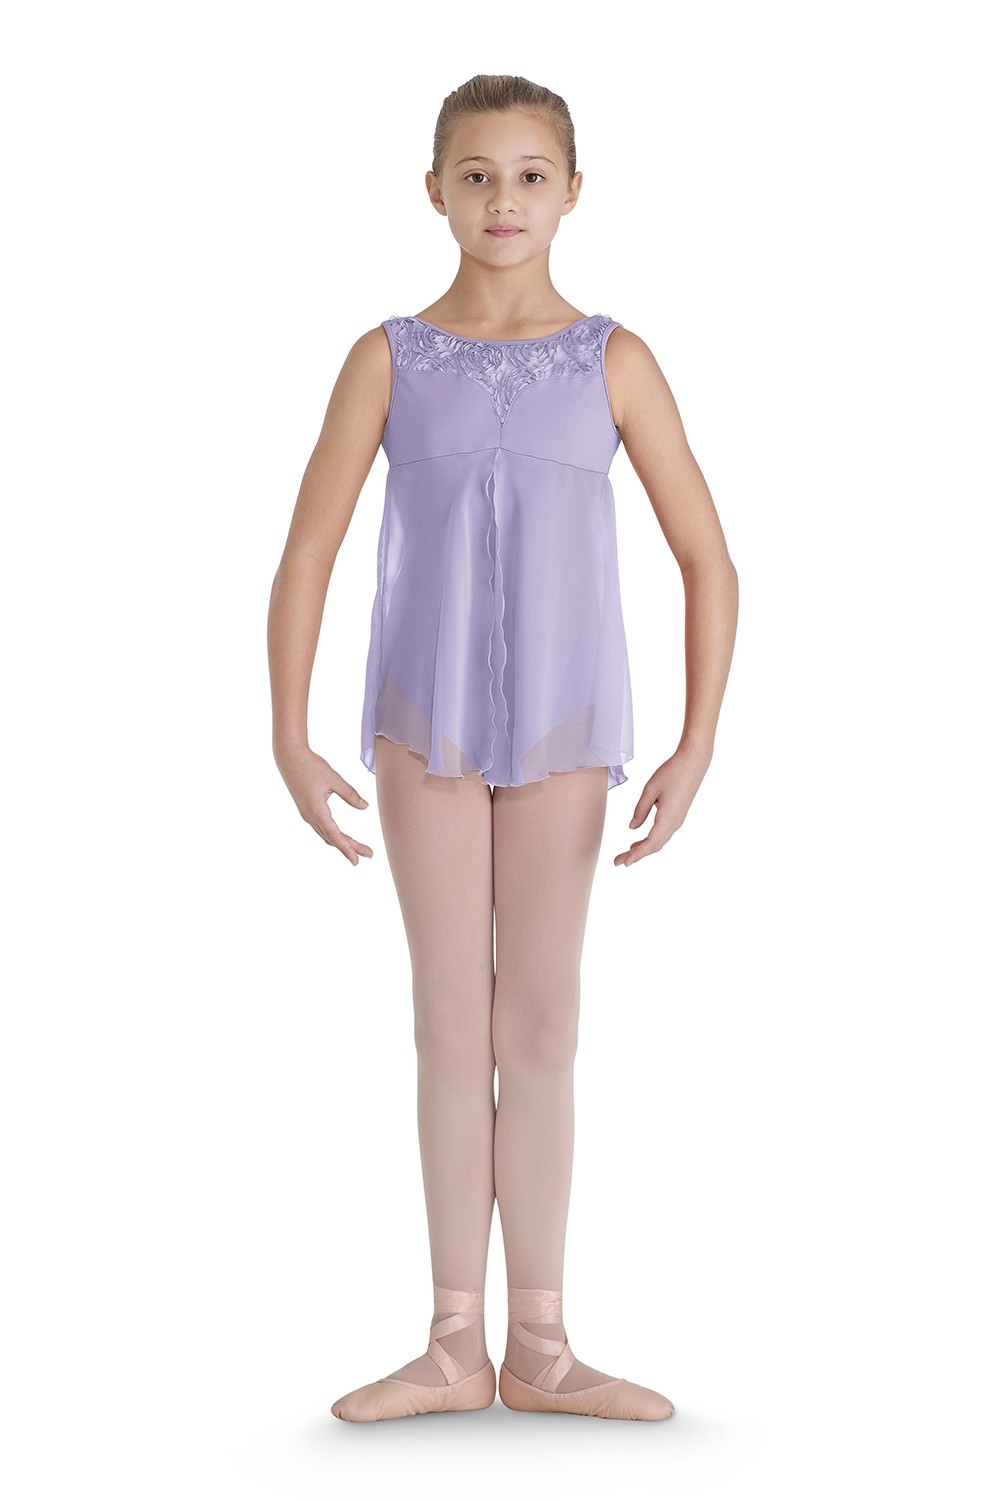 Raziela Children's Dance Leotards